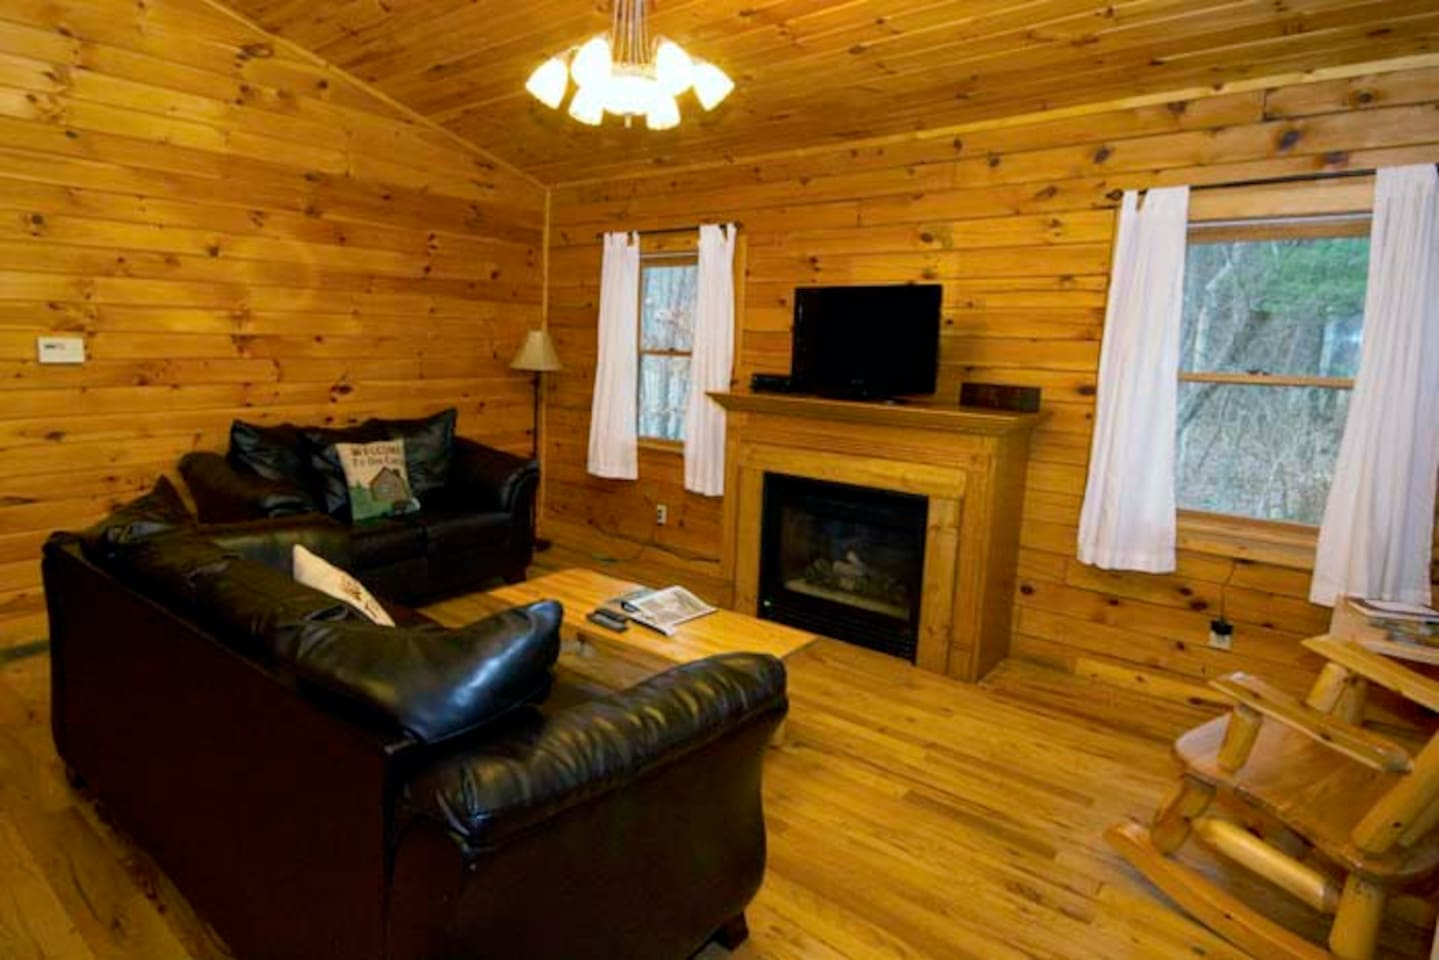 cabins rentals s pet secluded ohio friendly with hot tubs logan in